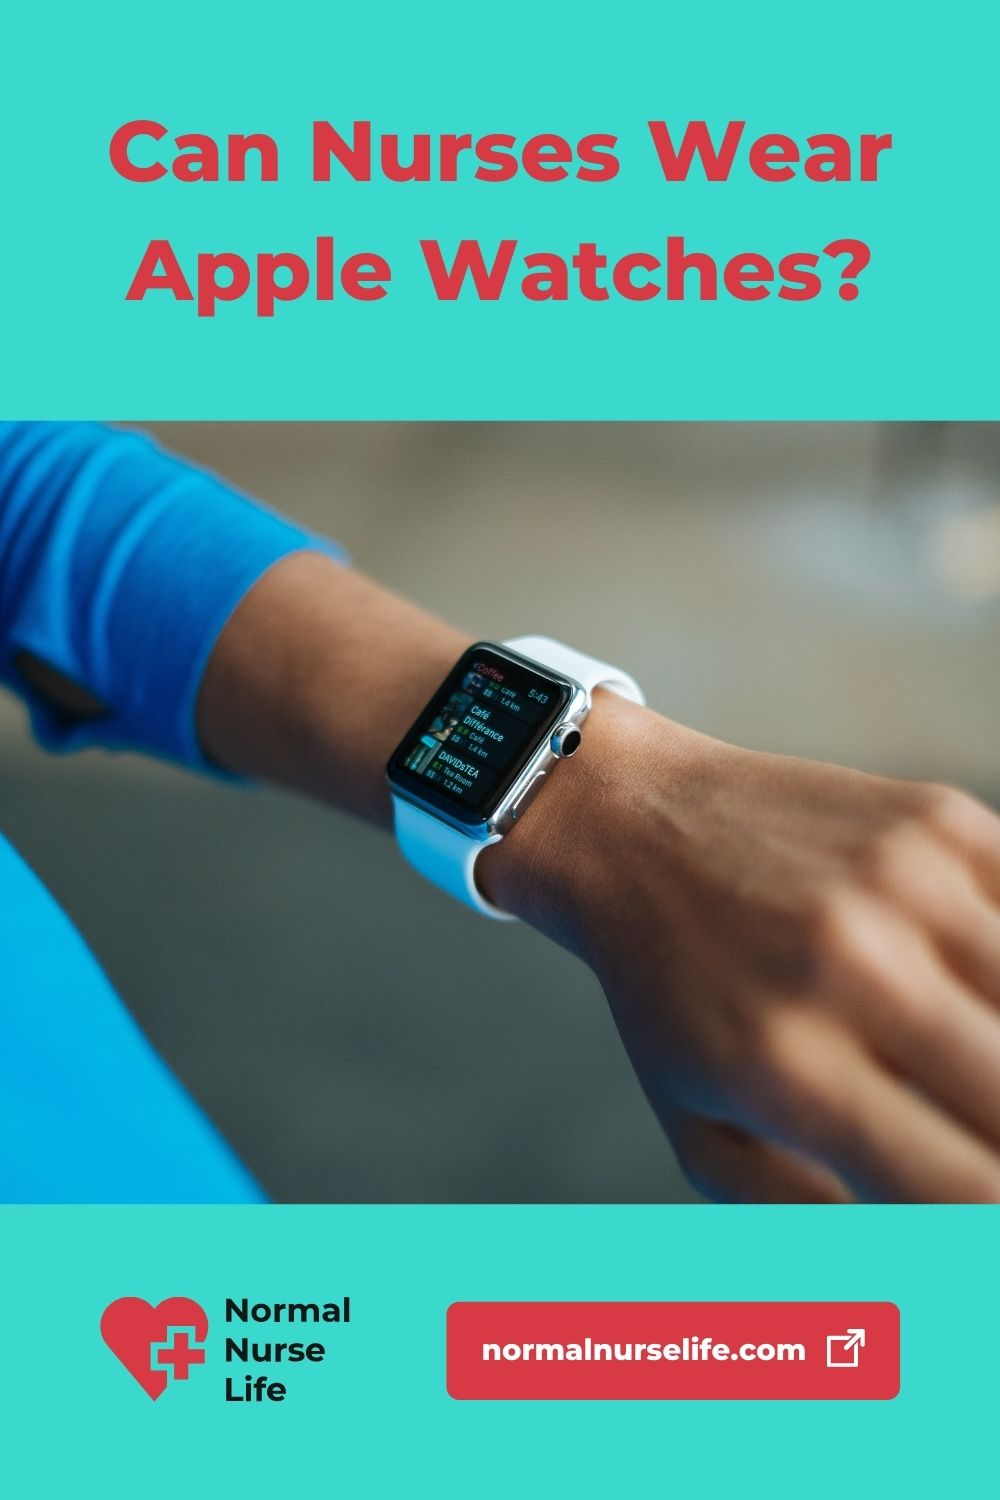 Can Nurses Wear Apple Watches or Not